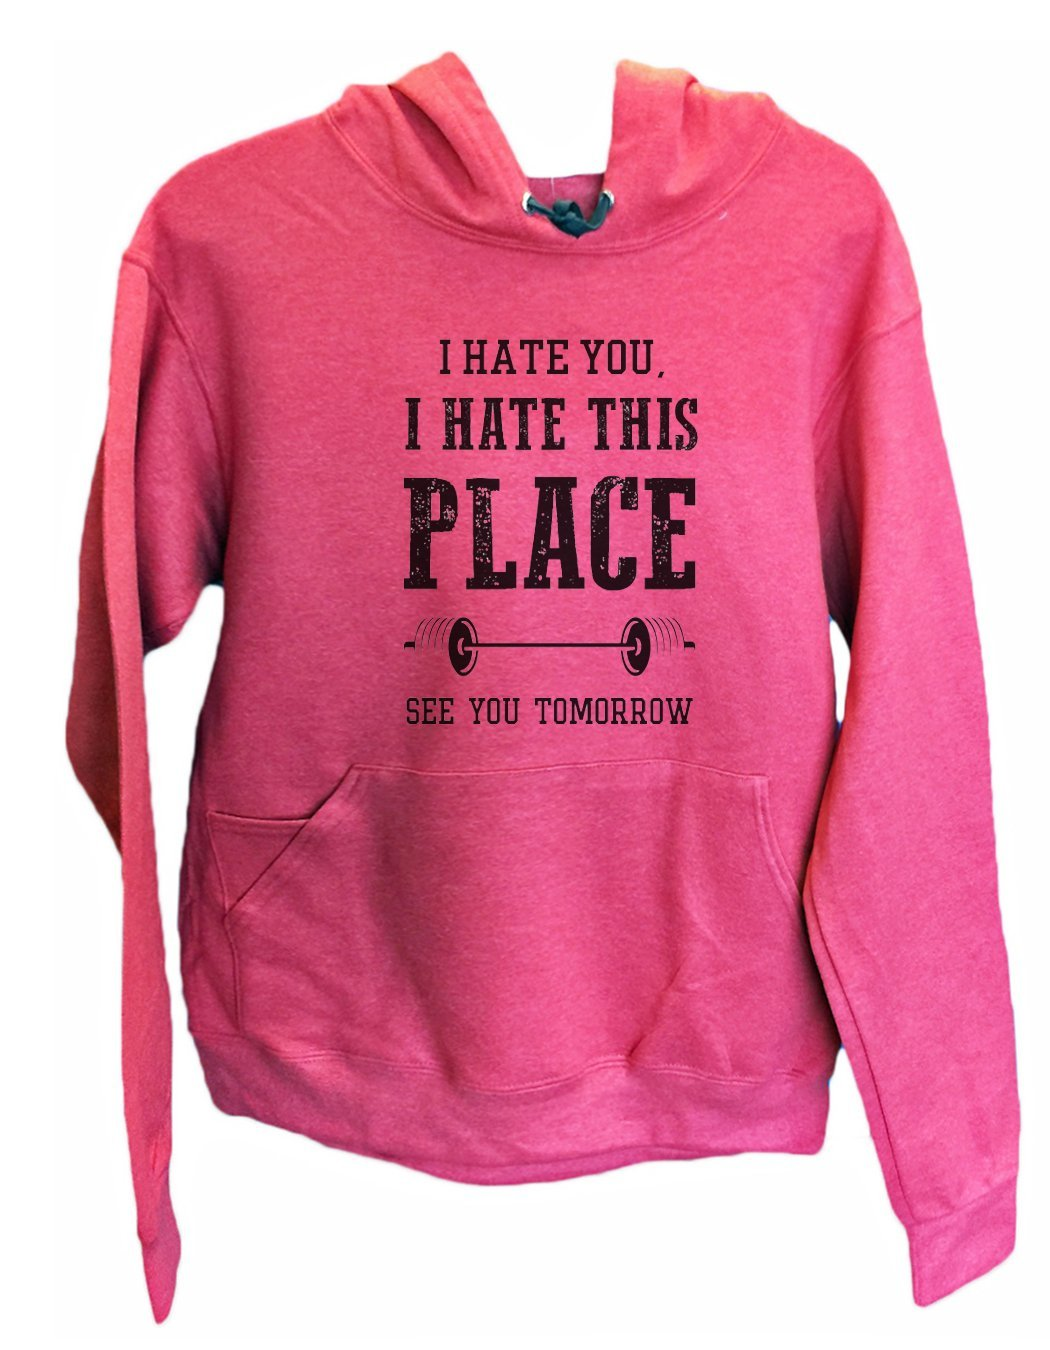 UNISEX HOODIE - I hate you, I hate this place See you tomorrow - FUNNY MENS AND WOMENS HOODED SWEATSHIRTS - 857 Funny Shirt Small / Cranberry Red